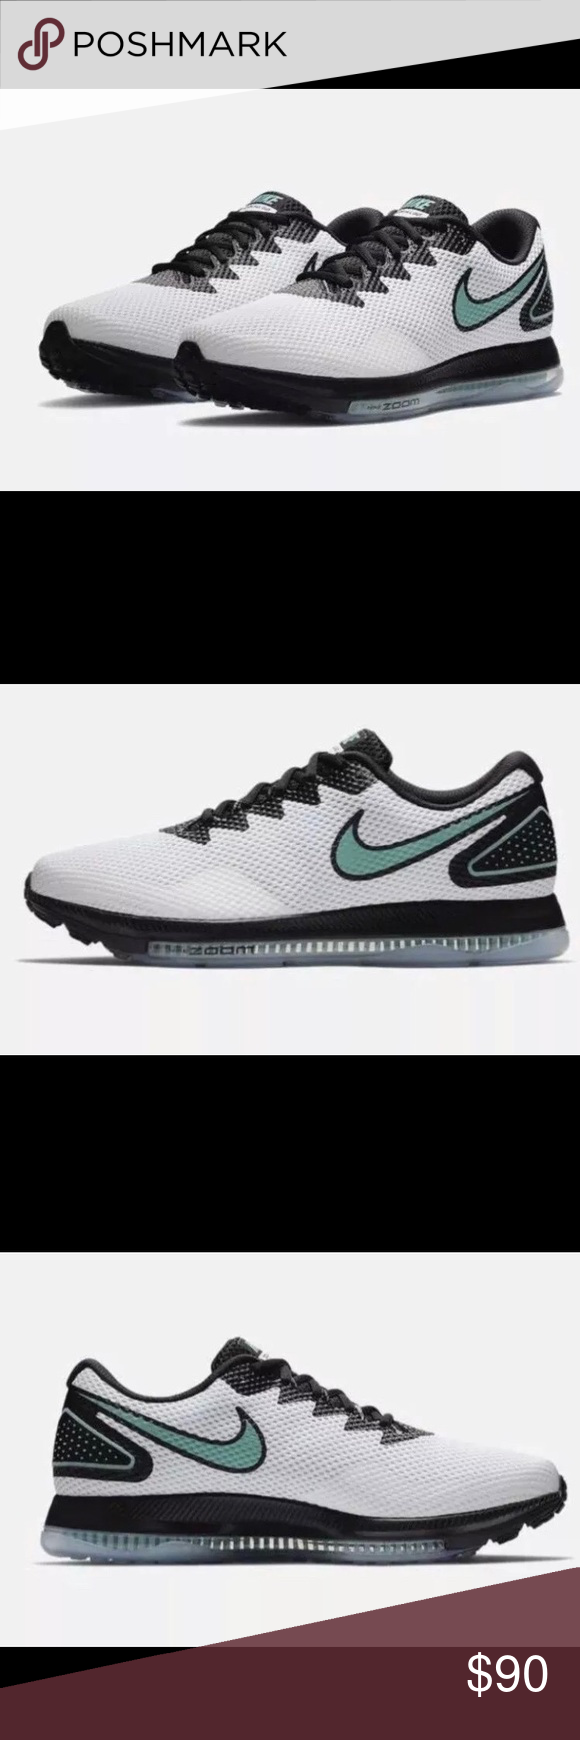 fa4860274c38 Nike Zoom All Out Low 2 White Jade Running Size 11 New Nike Zoom All Out  Low 2 Color White Jade and Black Men s Running Shoes   sneakers Size 11  Style ...